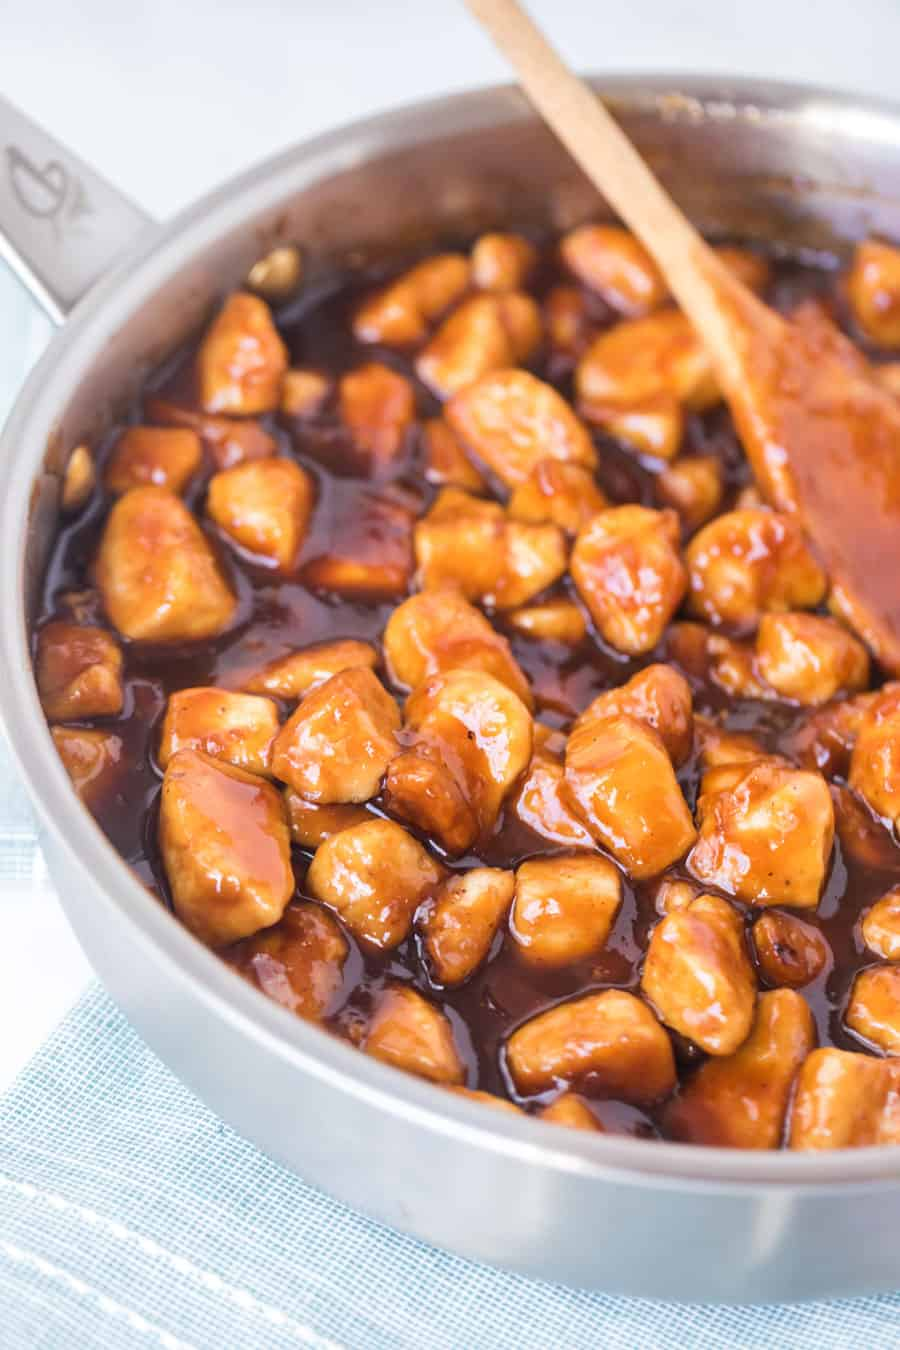 general tso's chicken in skillet with wooden spoon